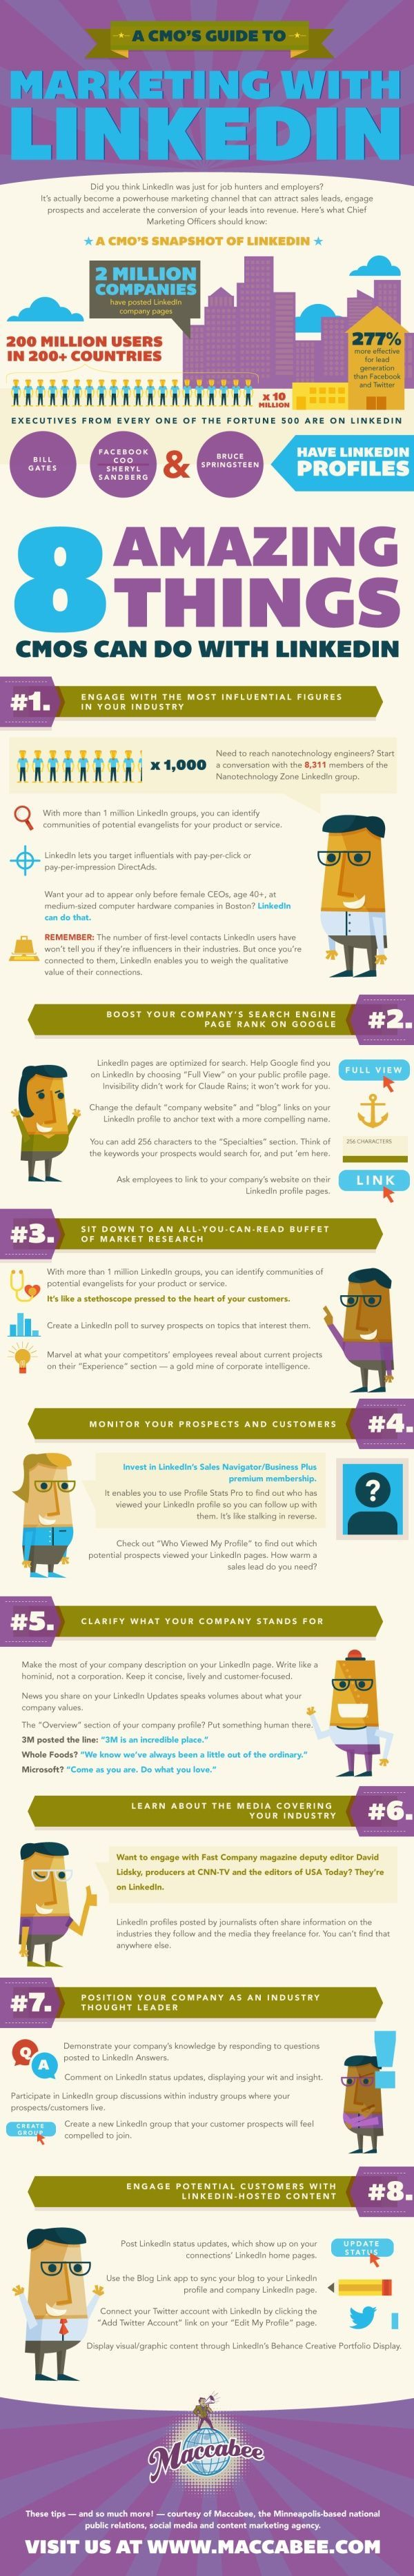 "SOCIAL MEDIA - ""8 Great Tips for Marketing Your Business with <a class=""pintag"" href=""/explore/LinkedIn"" title=""#LinkedIn explore Pinterest"">#LinkedIn</a> 